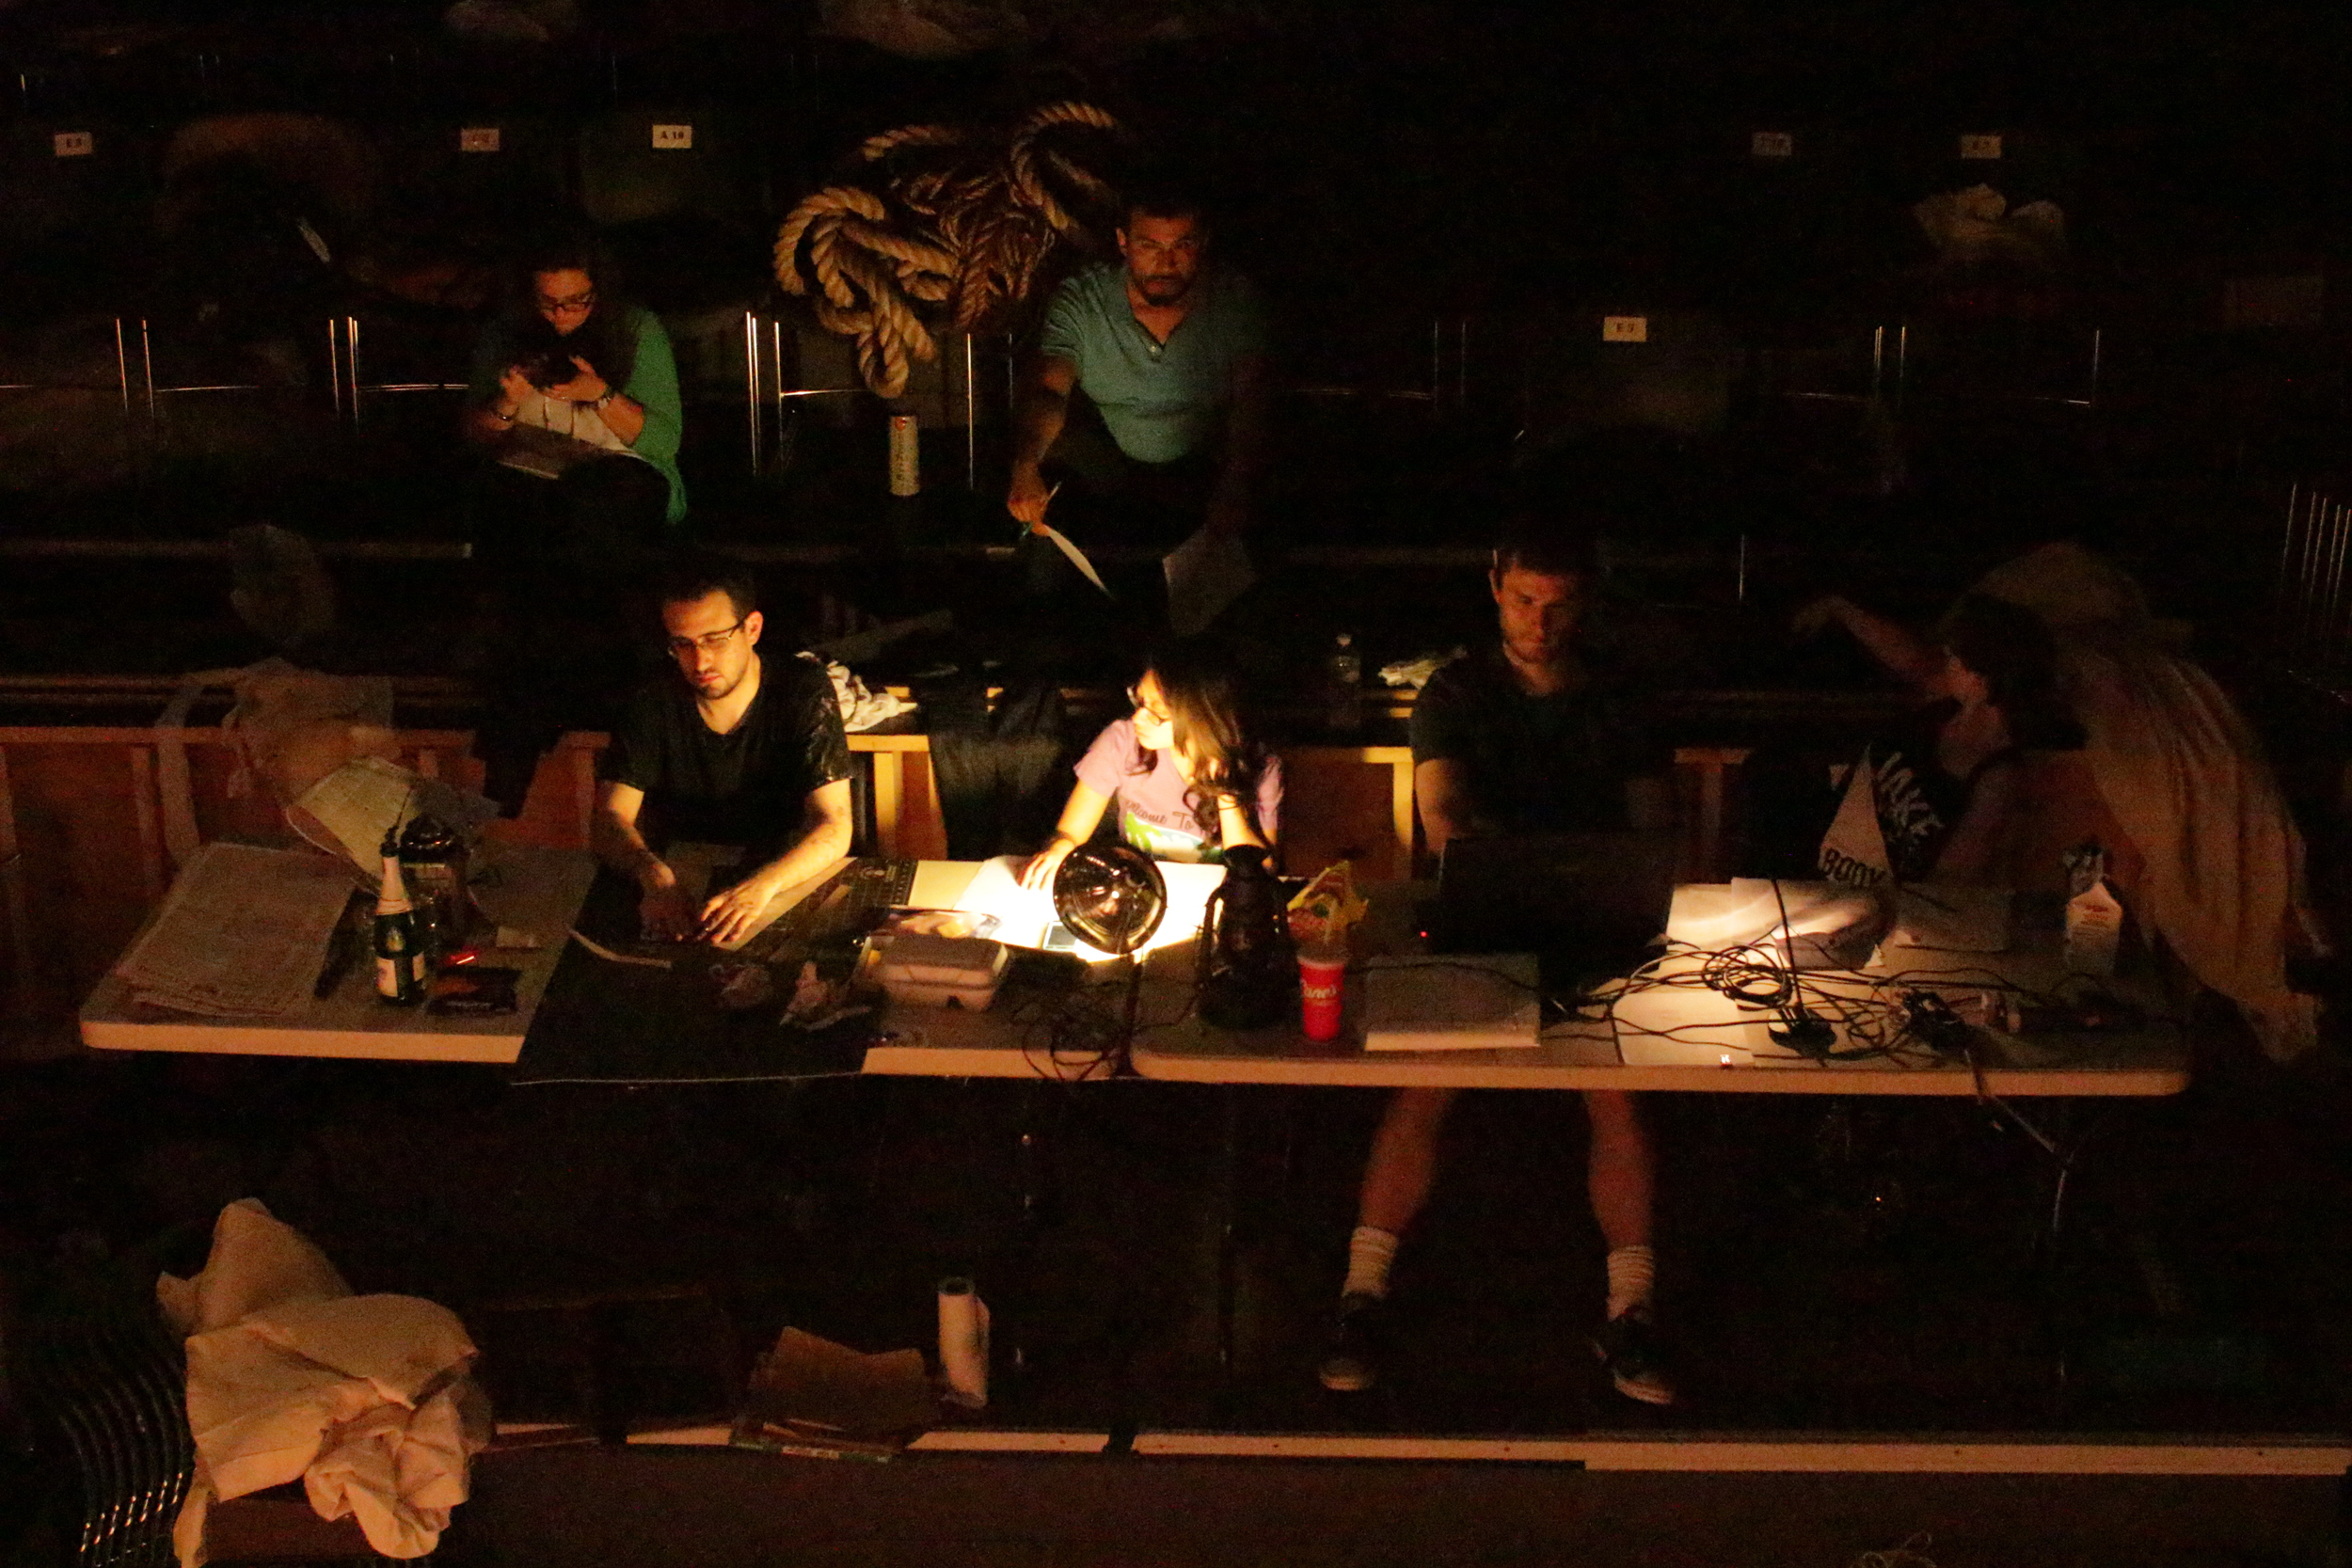 Behind the scenes  Top, from left: Heather Oshinsky (costumes), Jaime Carrillo (director)  Bottom, from left: Joshua Kigner (set), Naomi Ibasitas (stage manager), Ian W. King (lights); photo copyright 2016 by Roberto Mighty